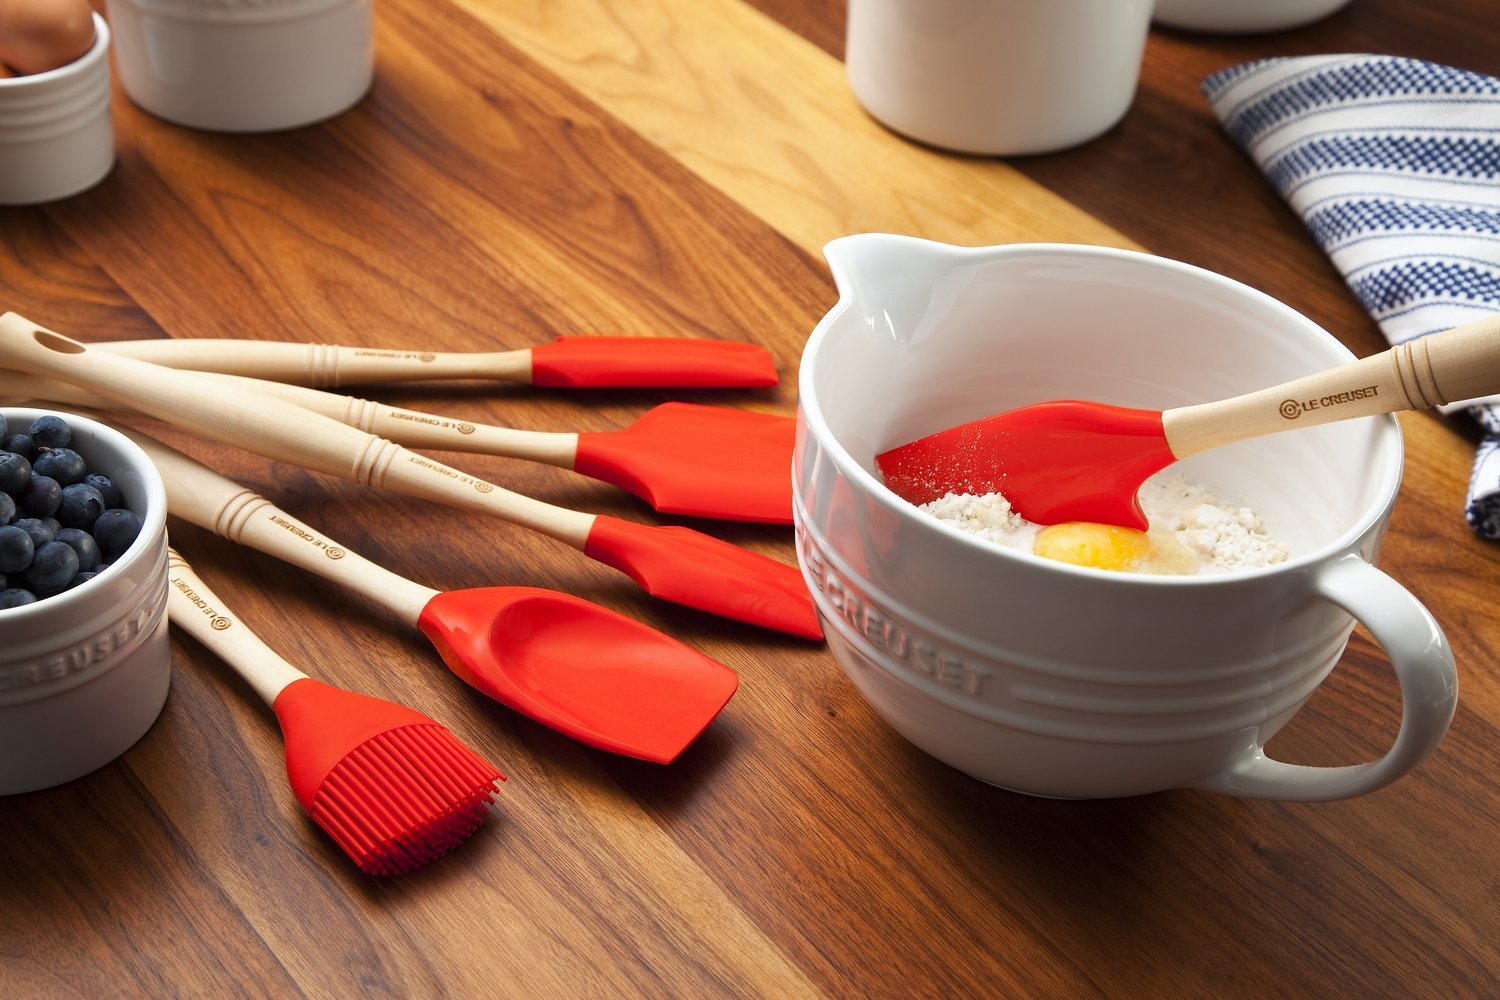 The Top 10 Kitchen Accessories And Gadgets That You Should